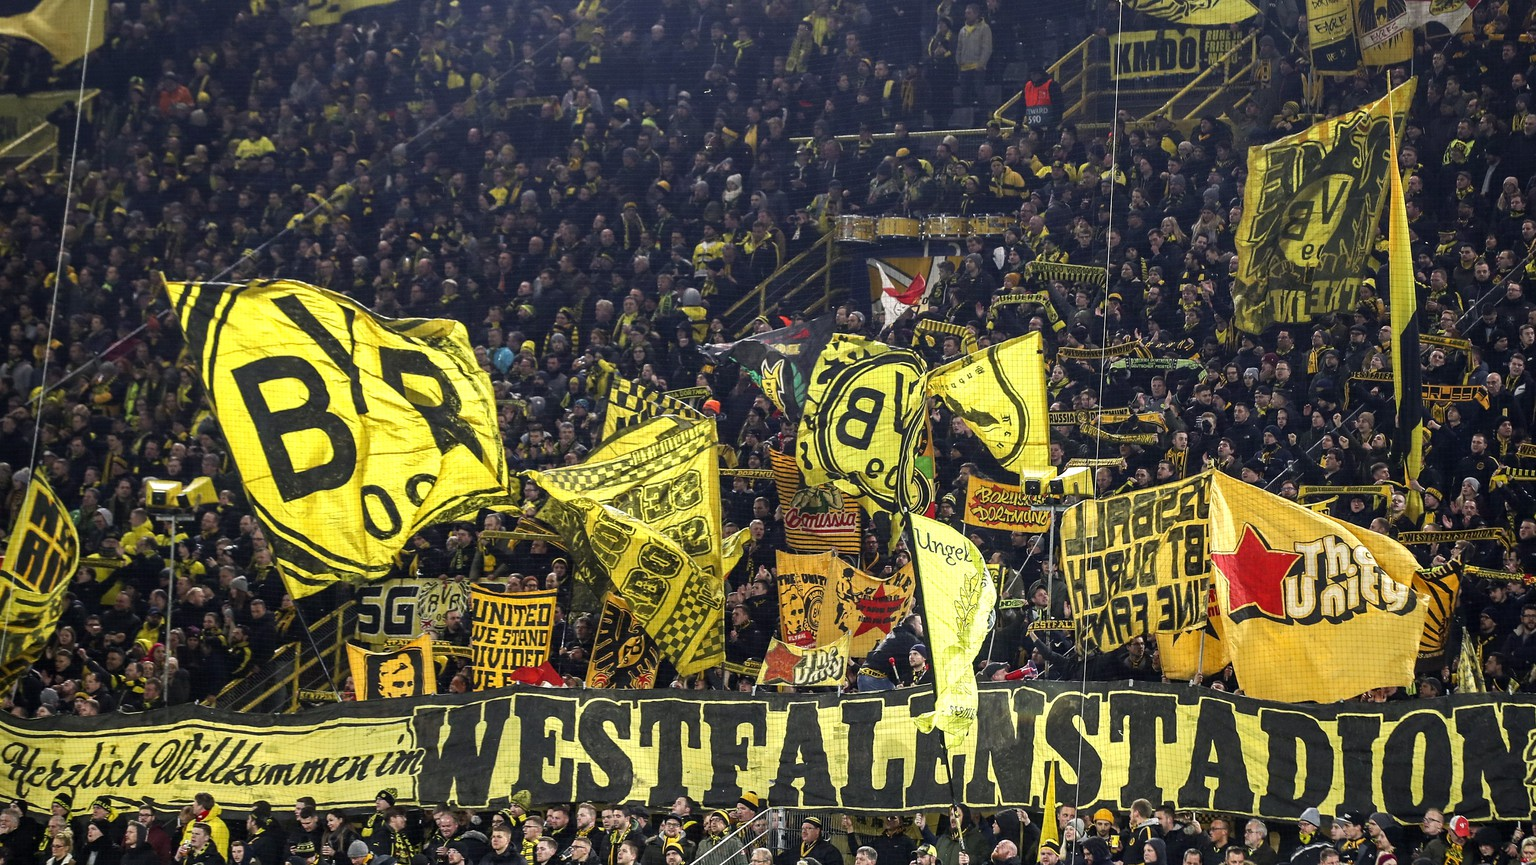 epa08060920 Dortmund's fans prior to the UEFA Champions League group F soccer match between Borussia Dortmund and Slavia Prague in Dortmund, Germany, 10 December 2019.  EPA/FRIEDEMANN VOGEL